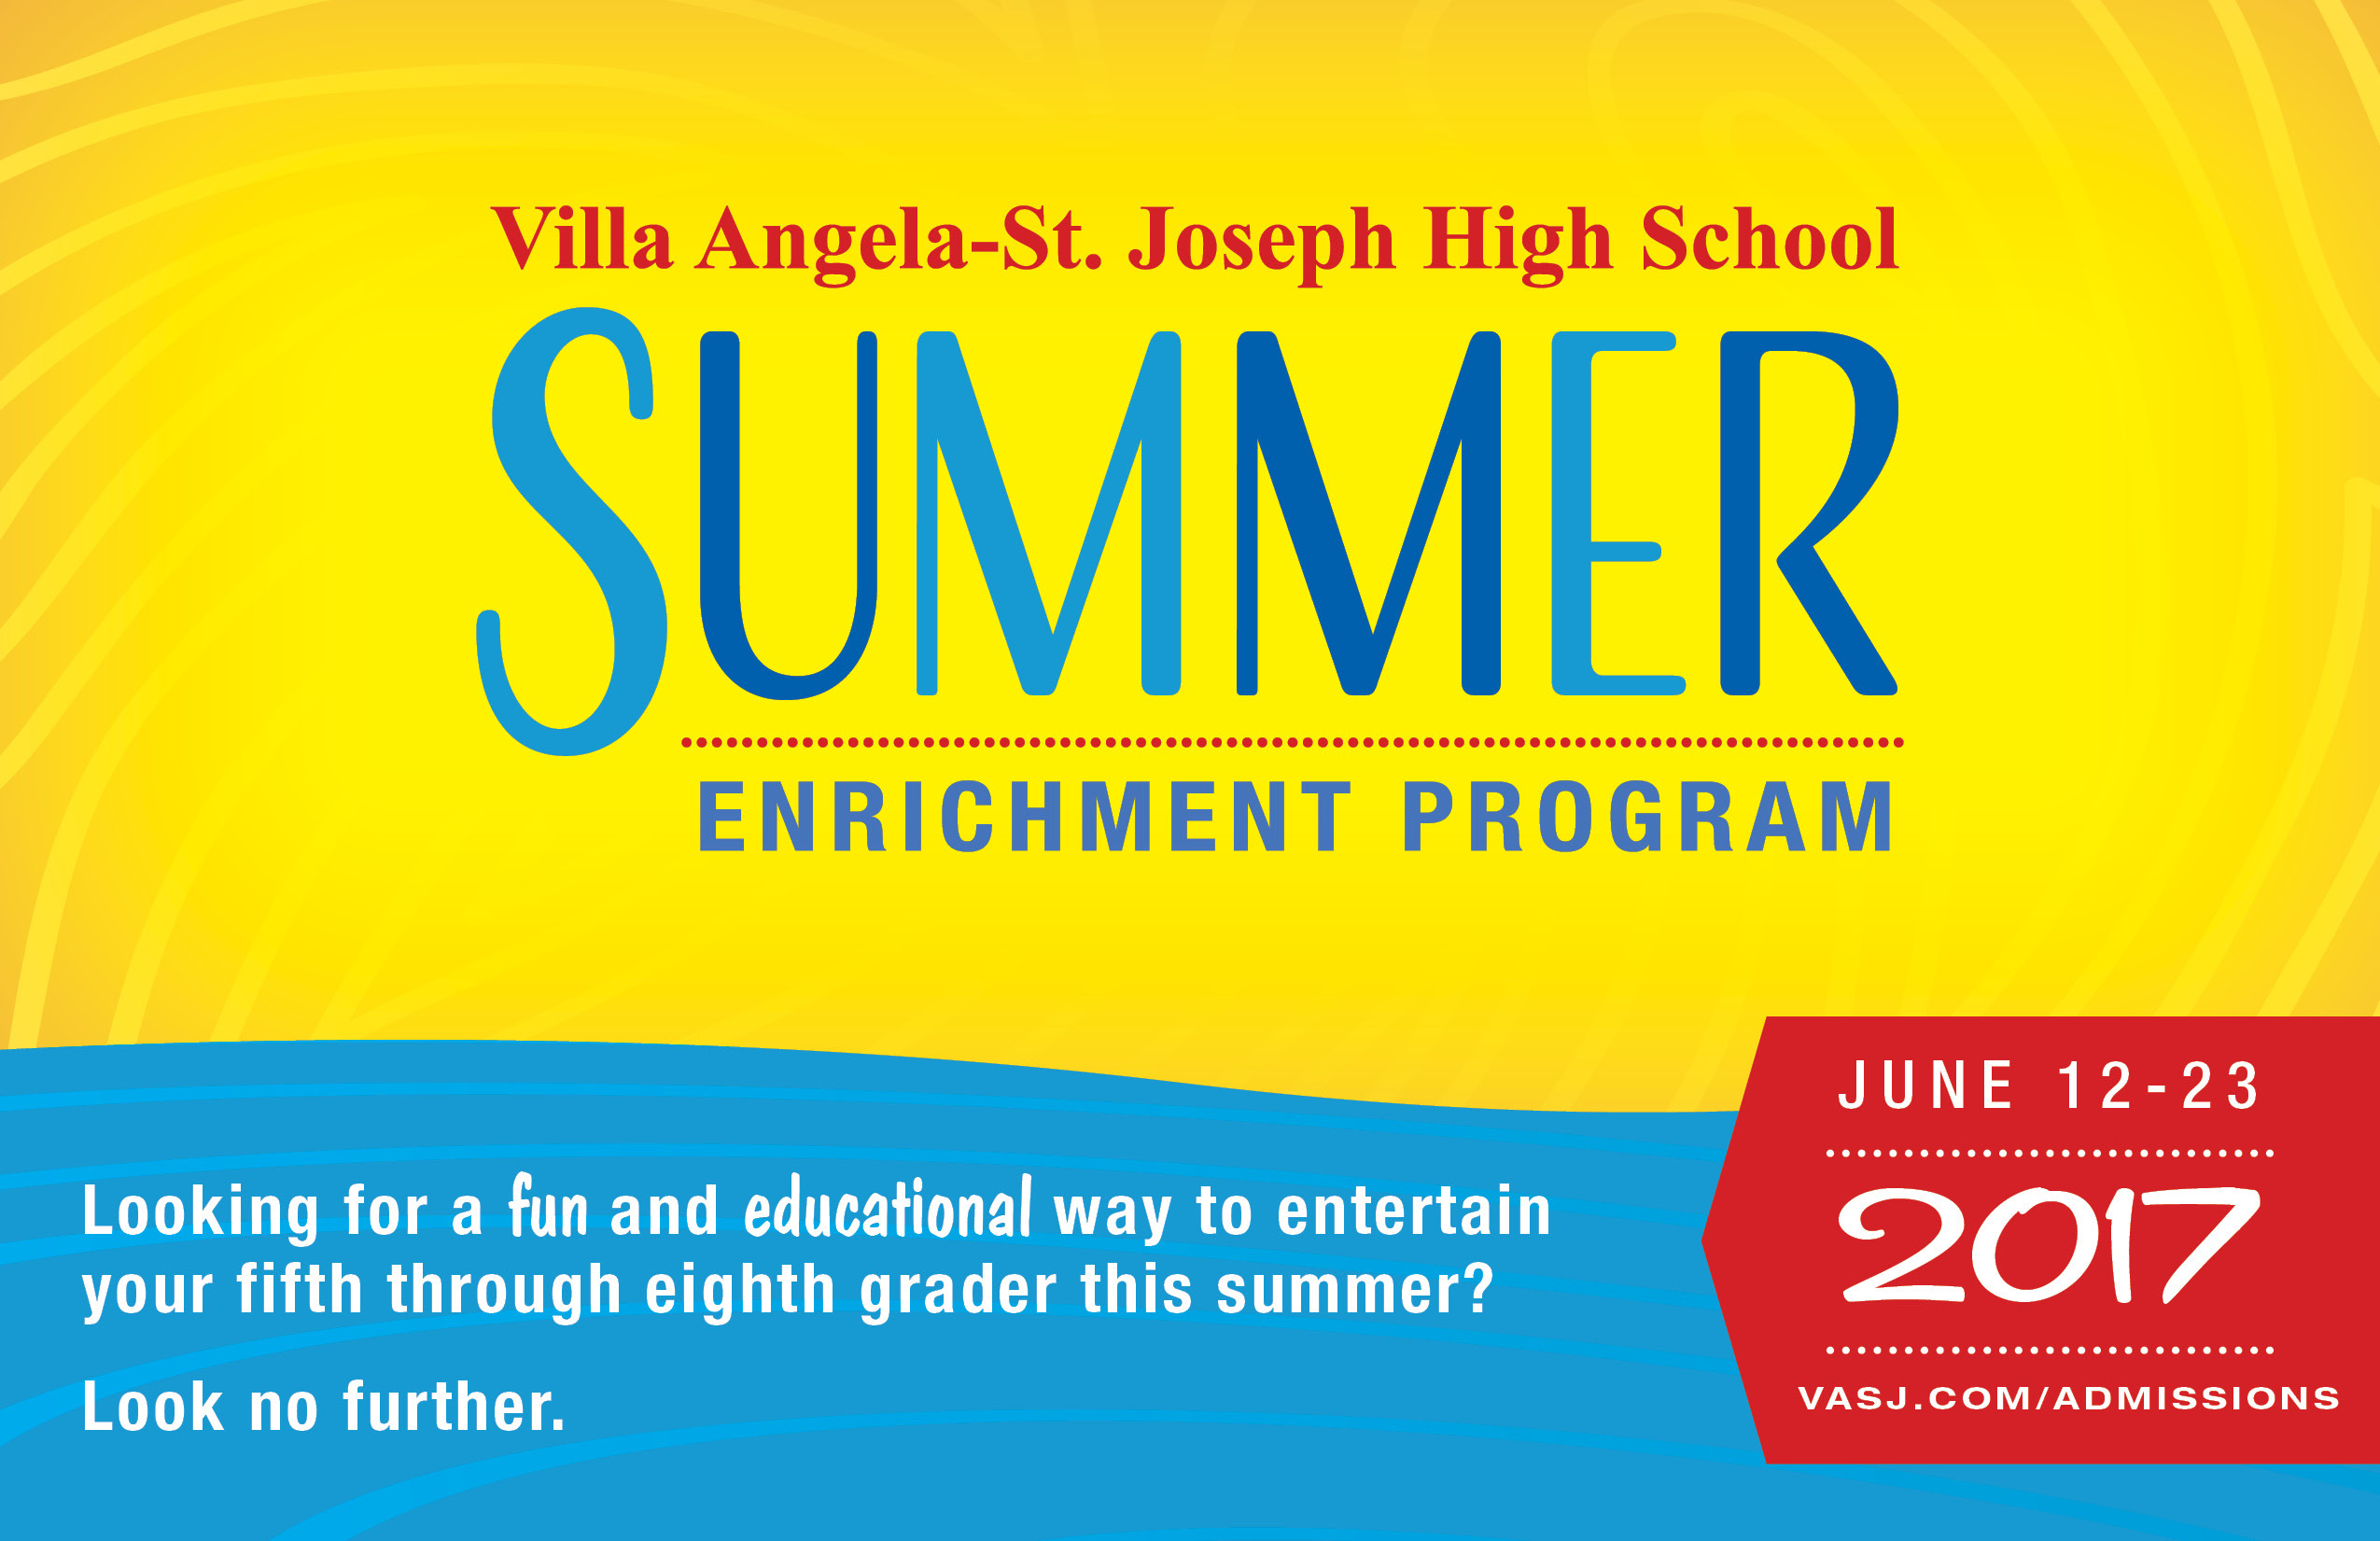 VASJ to offer two Summer Enrichment Programs in June